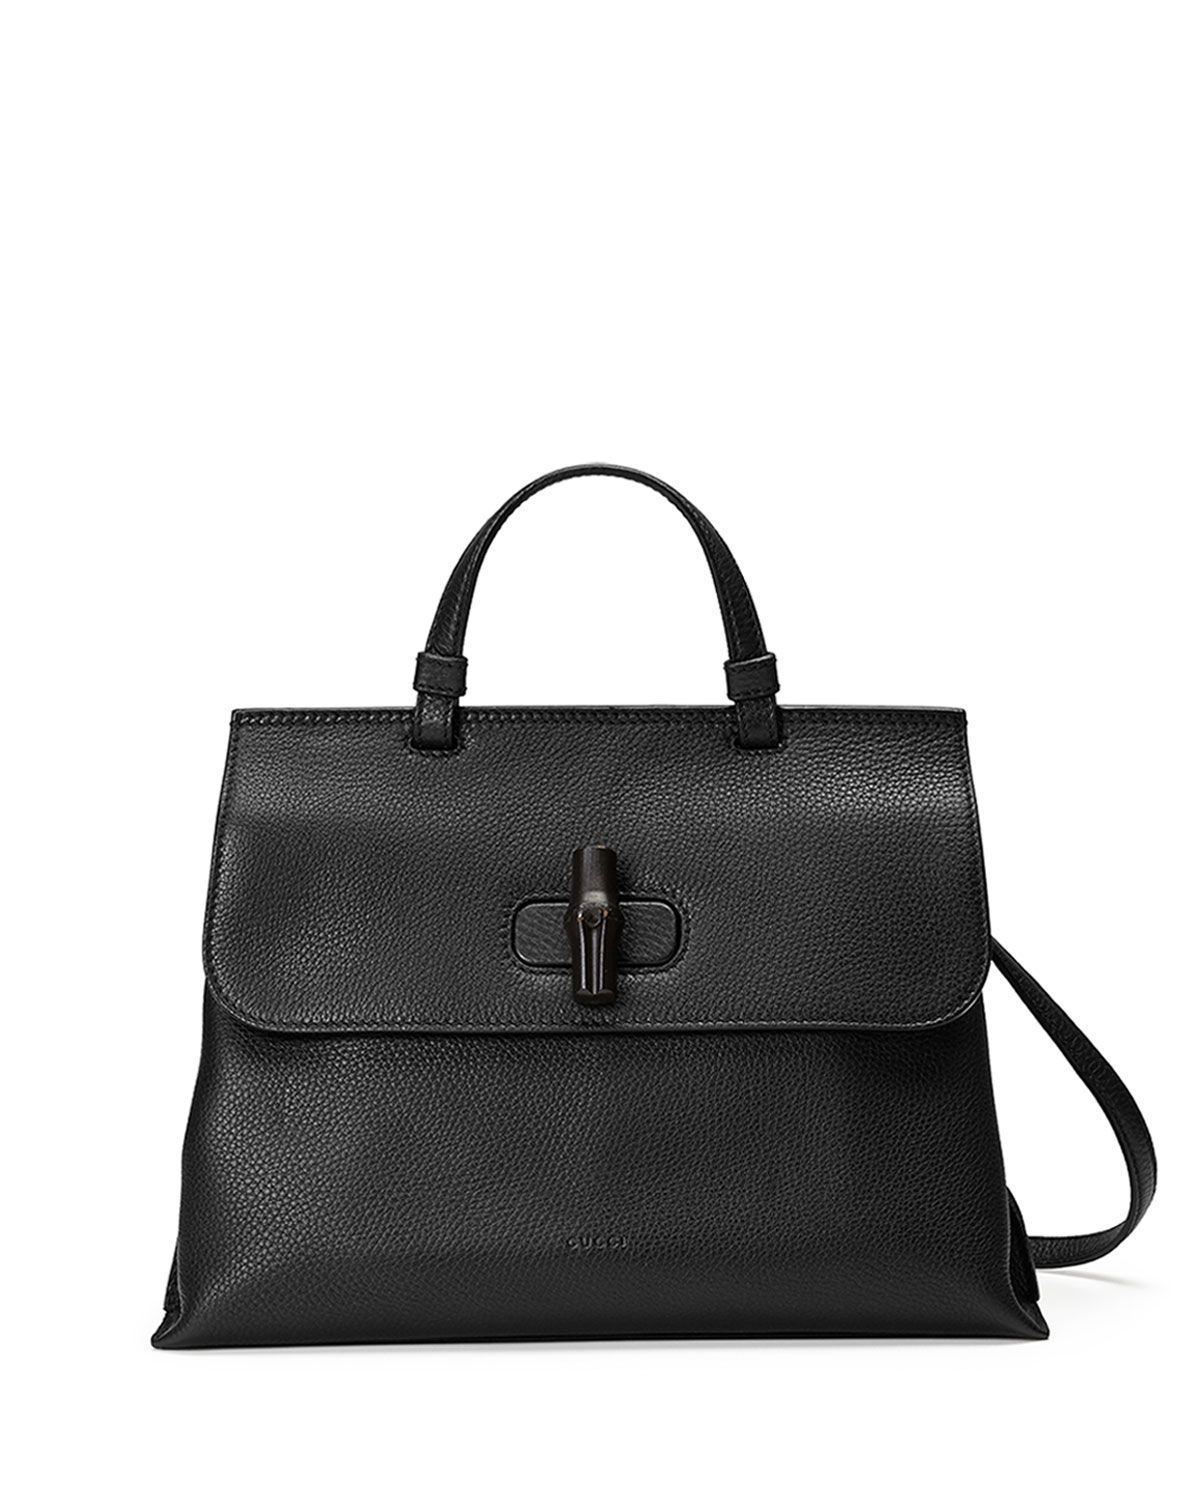 7c655e1148a4a3 Gucci Bamboo Daily Medium Leather Top Handle Bag, Black | Neiman Marcus